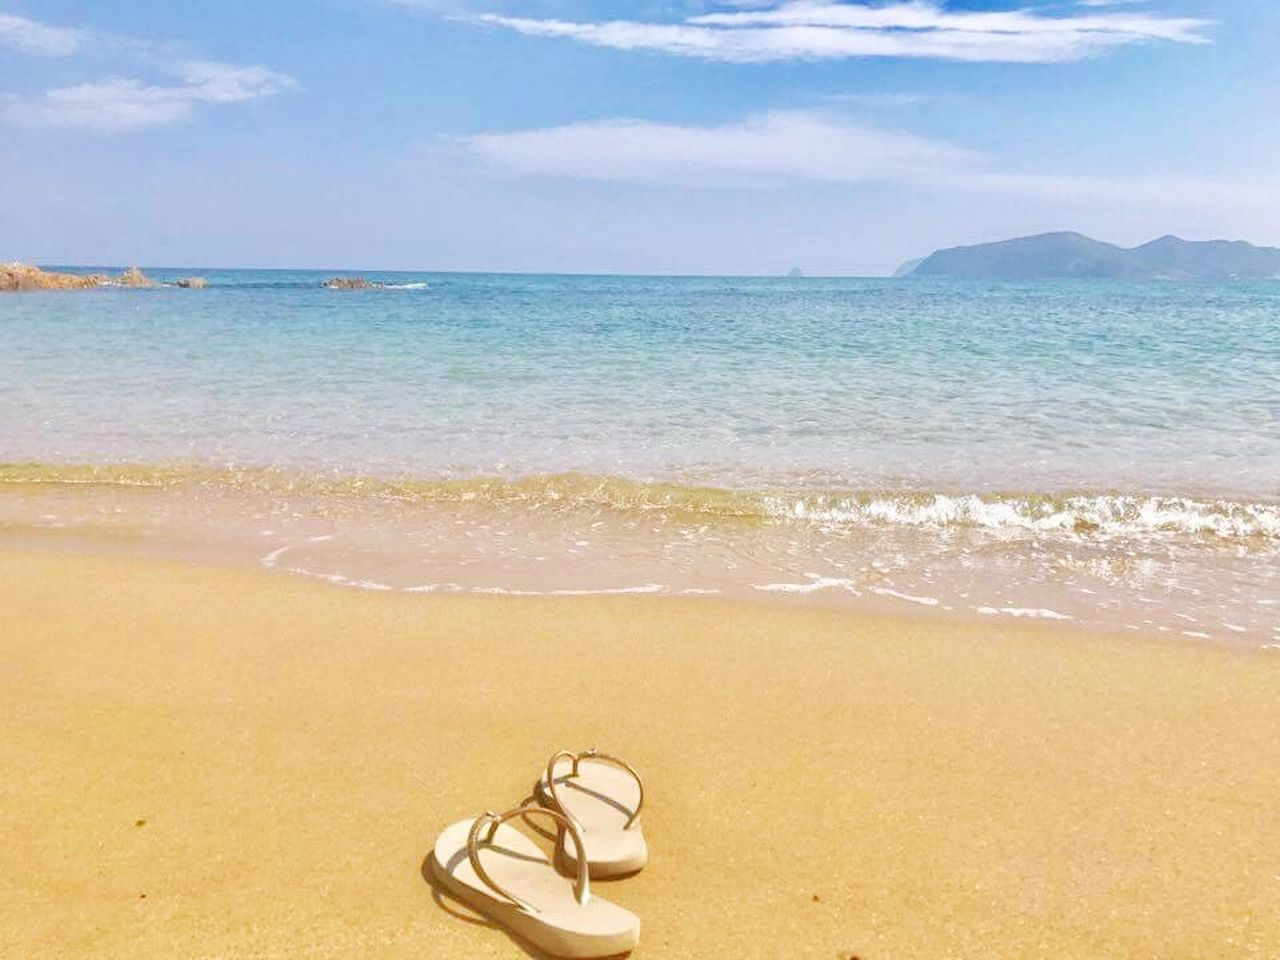 sea, beach, pair, sand, water, shoe, beauty in nature, sandal, tranquility, no people, horizon over water, nature, scenics, day, sky, outdoors, wave